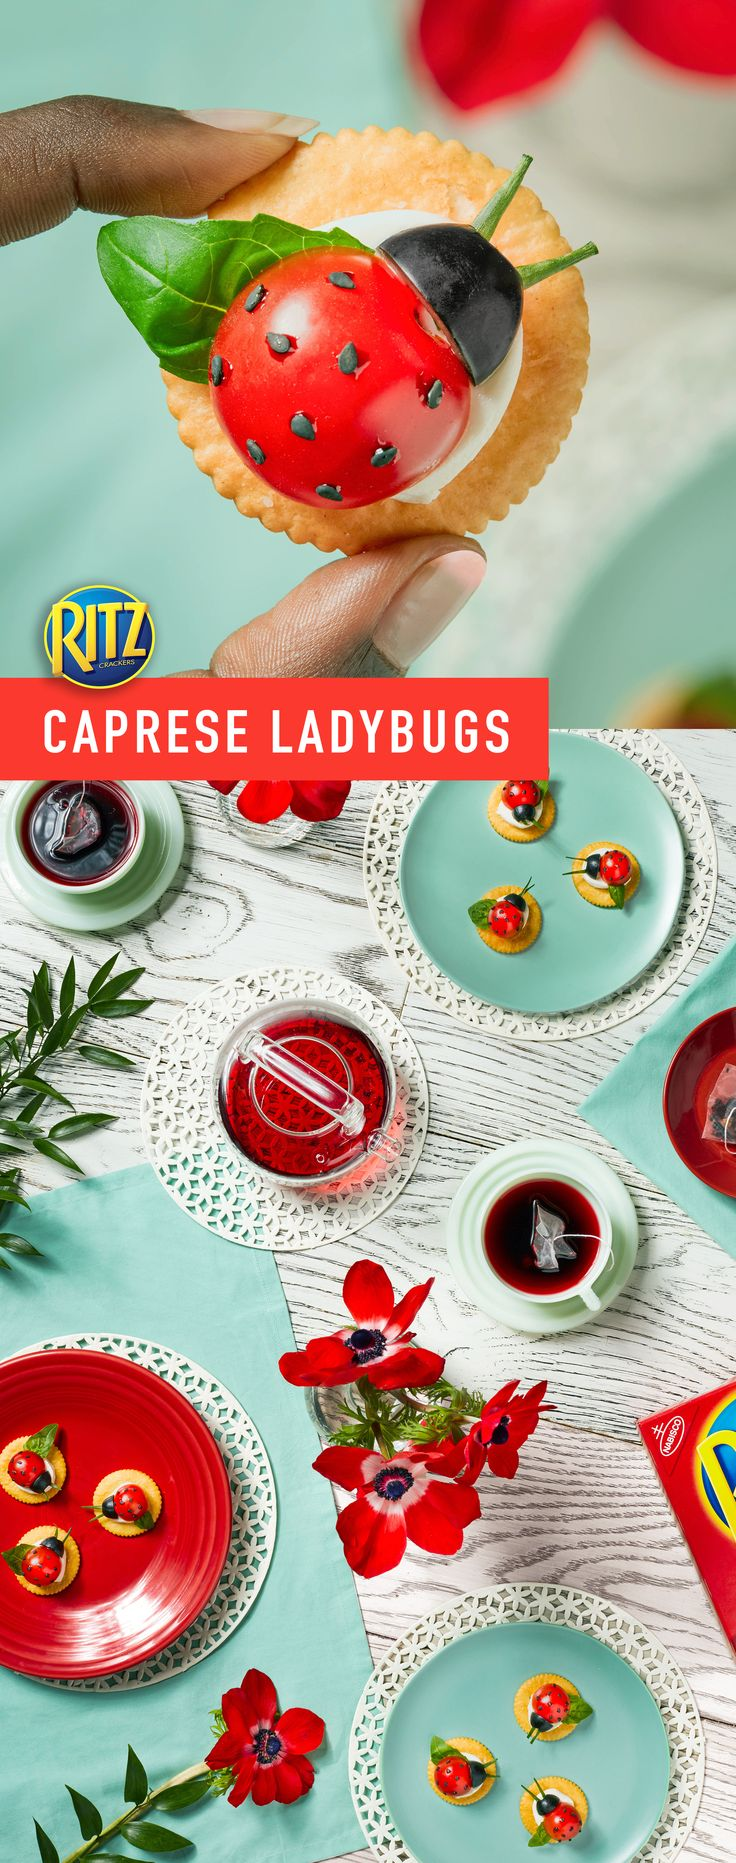 These appetizer snacks will have your tea party buzzing! Caprese Ladybugs look great and are surprisingly simple to make! These snacks are a great way to celebrate the arrival of spring. Instructions: Top each cracker with 1 cheese slice and 1 basil leaf. Add 1 tomato half to each for the ladybug's body, 1 olive piece for the head and 2 green onion strips for the antennae. Brush with balsamic glaze and finish with sprinkled sesame seed. You've got the stuff to make life rich.